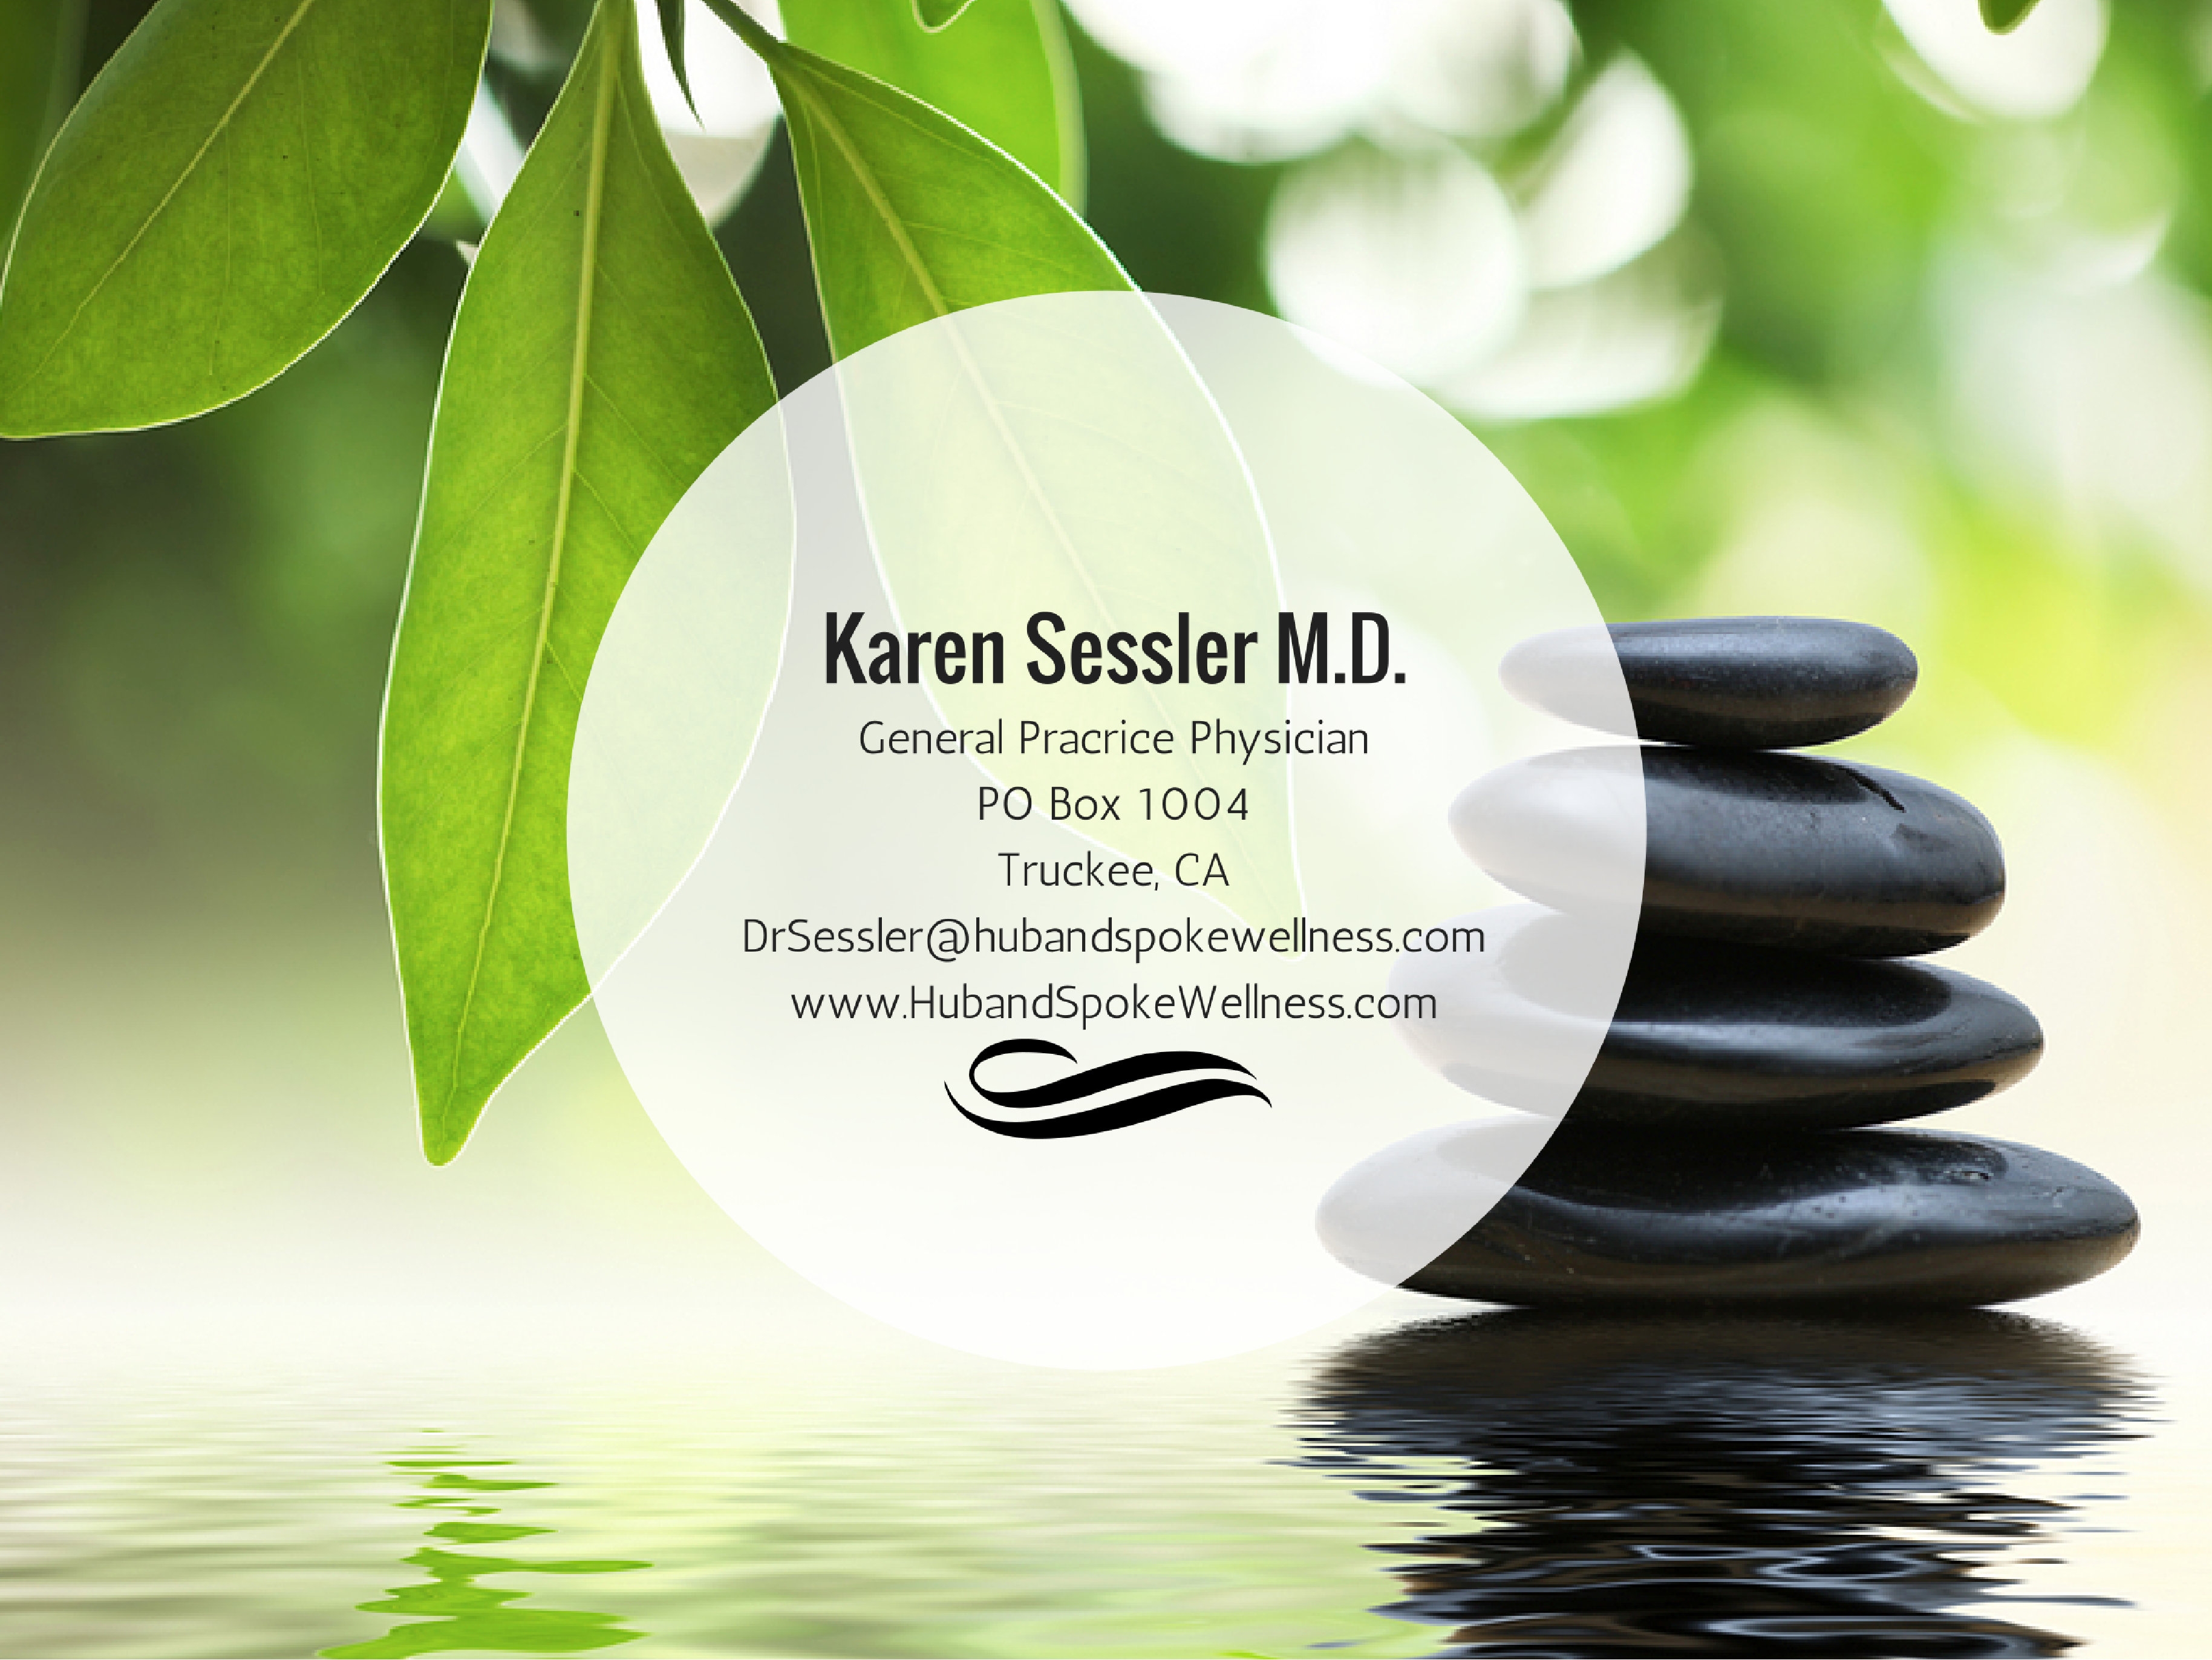 Karen Sessler, MD